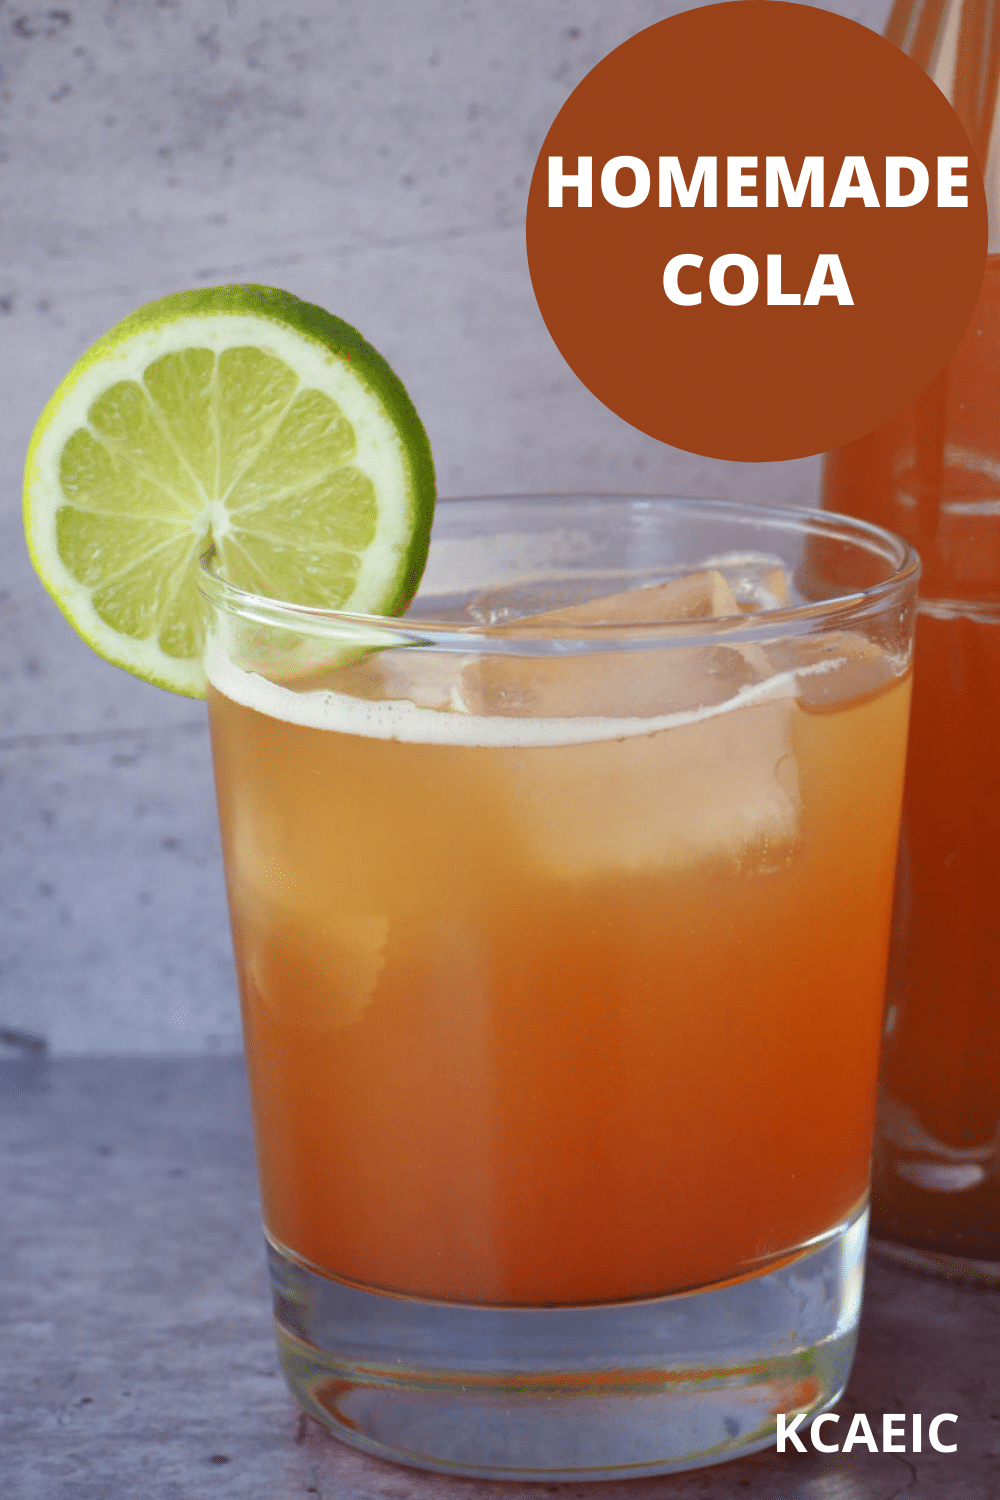 Glass of homemade cola with ice, lime circle garnish and bottle of cola beside it and text overlay, homemade cola, KCAEIC.